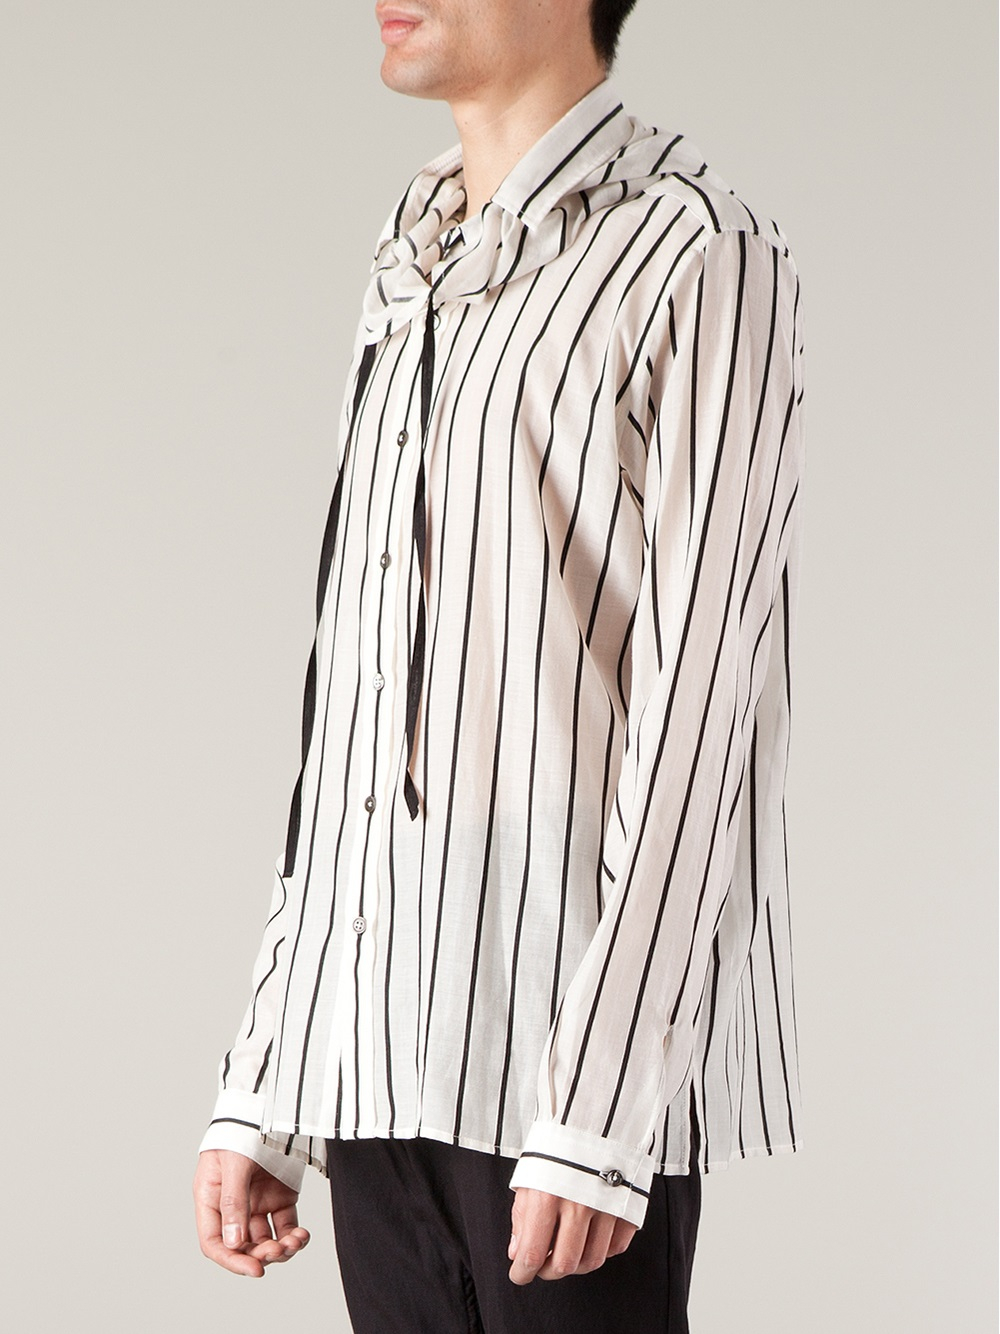 Where Can You Find SHIRTS - Shirts Ann Demeulemeester Clearance Low Cost Visa Payment For Sale Cheap Pay With Visa 0tKPh